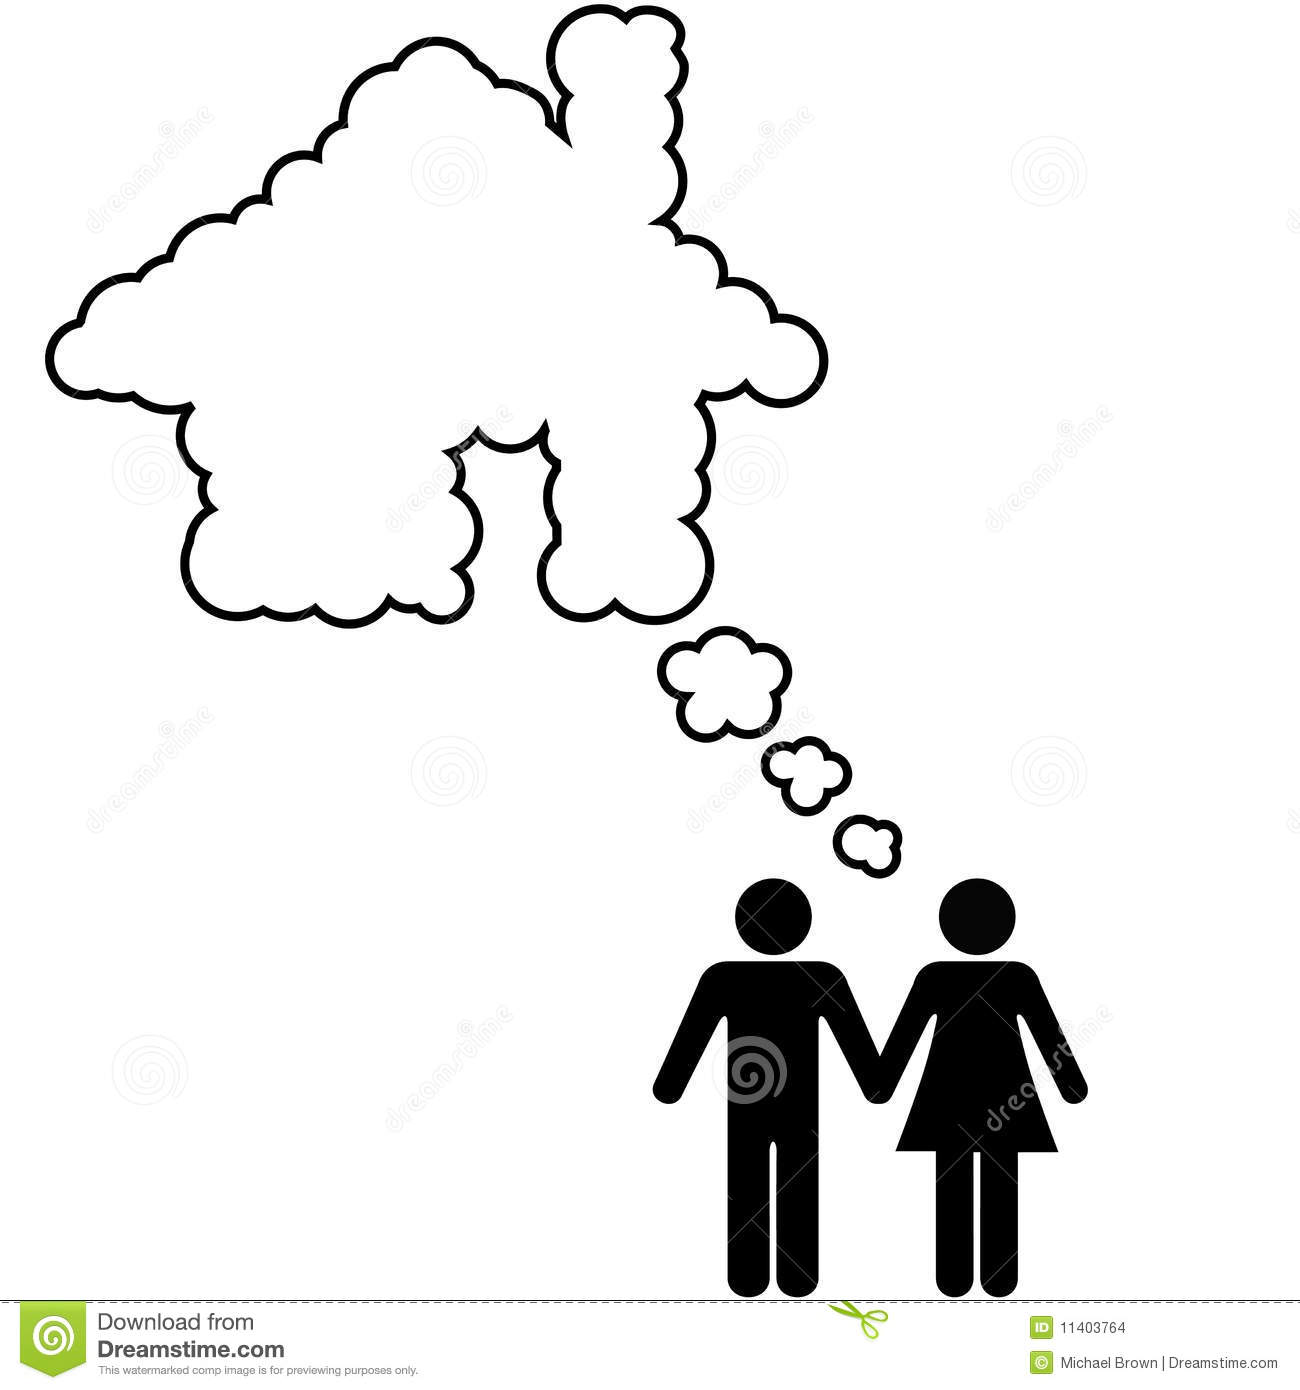 Dream House Couple Share Home Ownership Idea Stock Vector ...